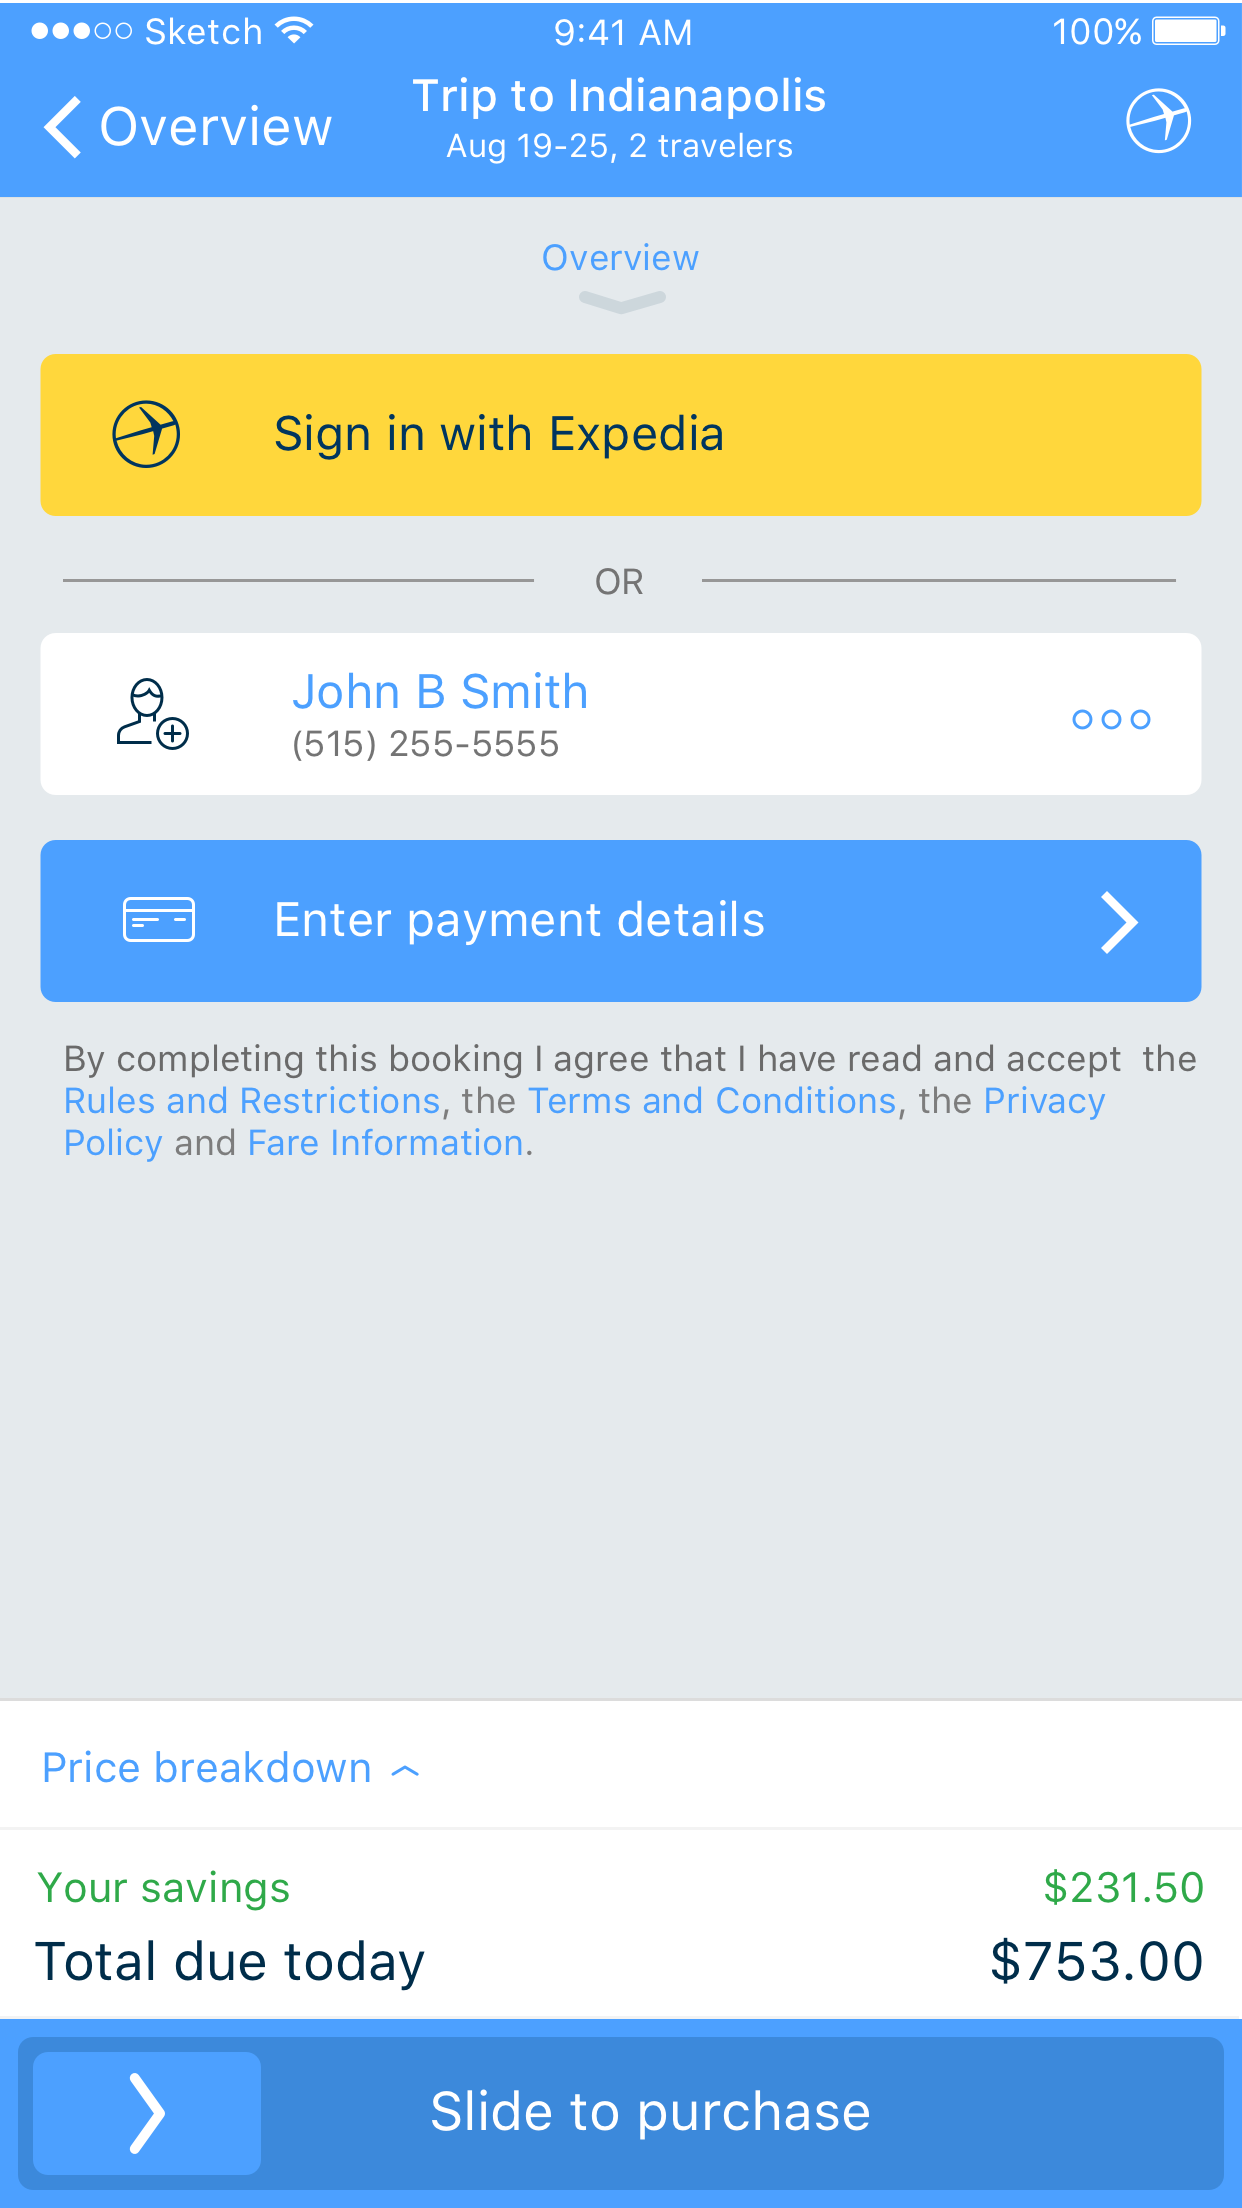 92 - Checkout Payment Details Highlighted Copy 4.png